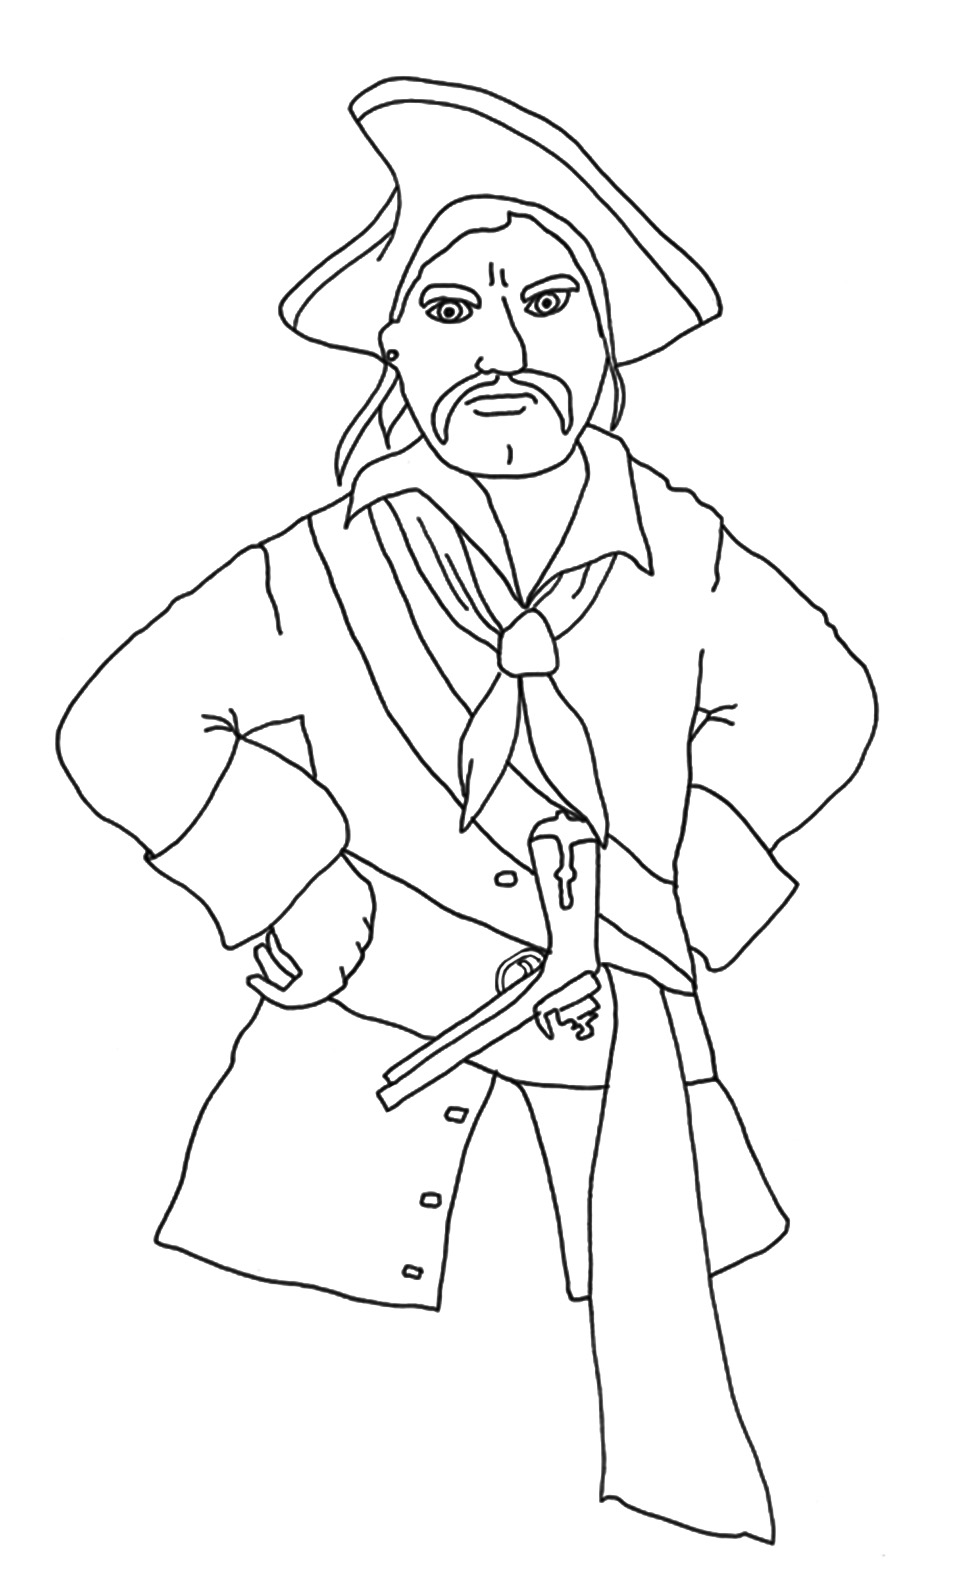 pitate coloring pages | Pirate Coloring Pages